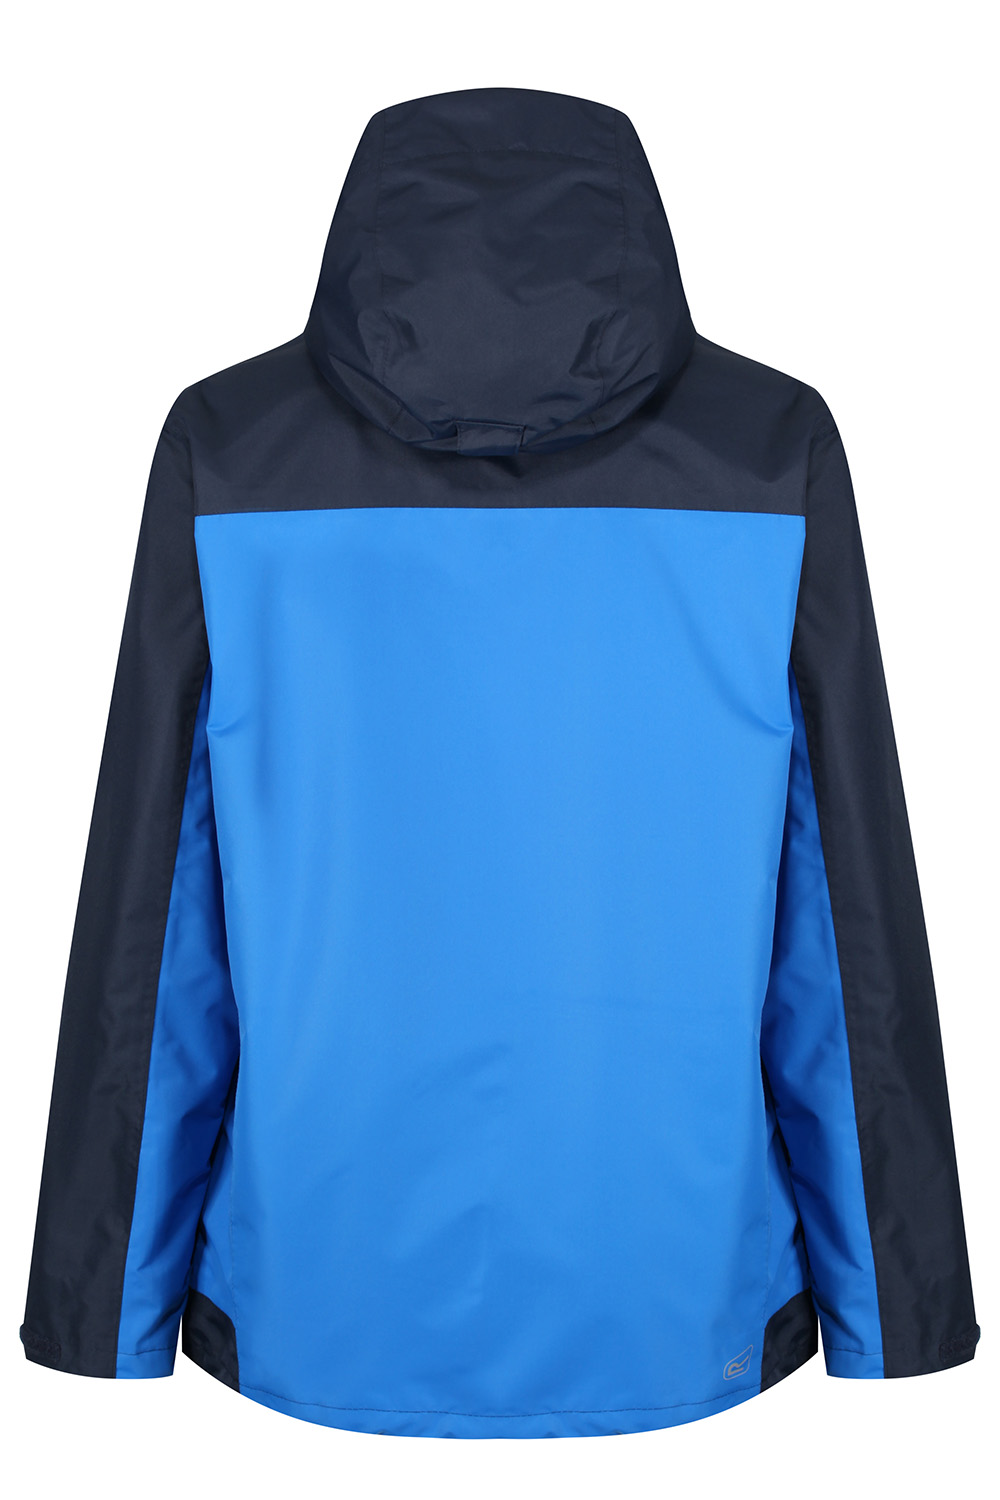 Regatta-Mens-Calderdale-II-Jacket-Waterproof-Breathable-Isotex-5000-Hooded-Coat thumbnail 13